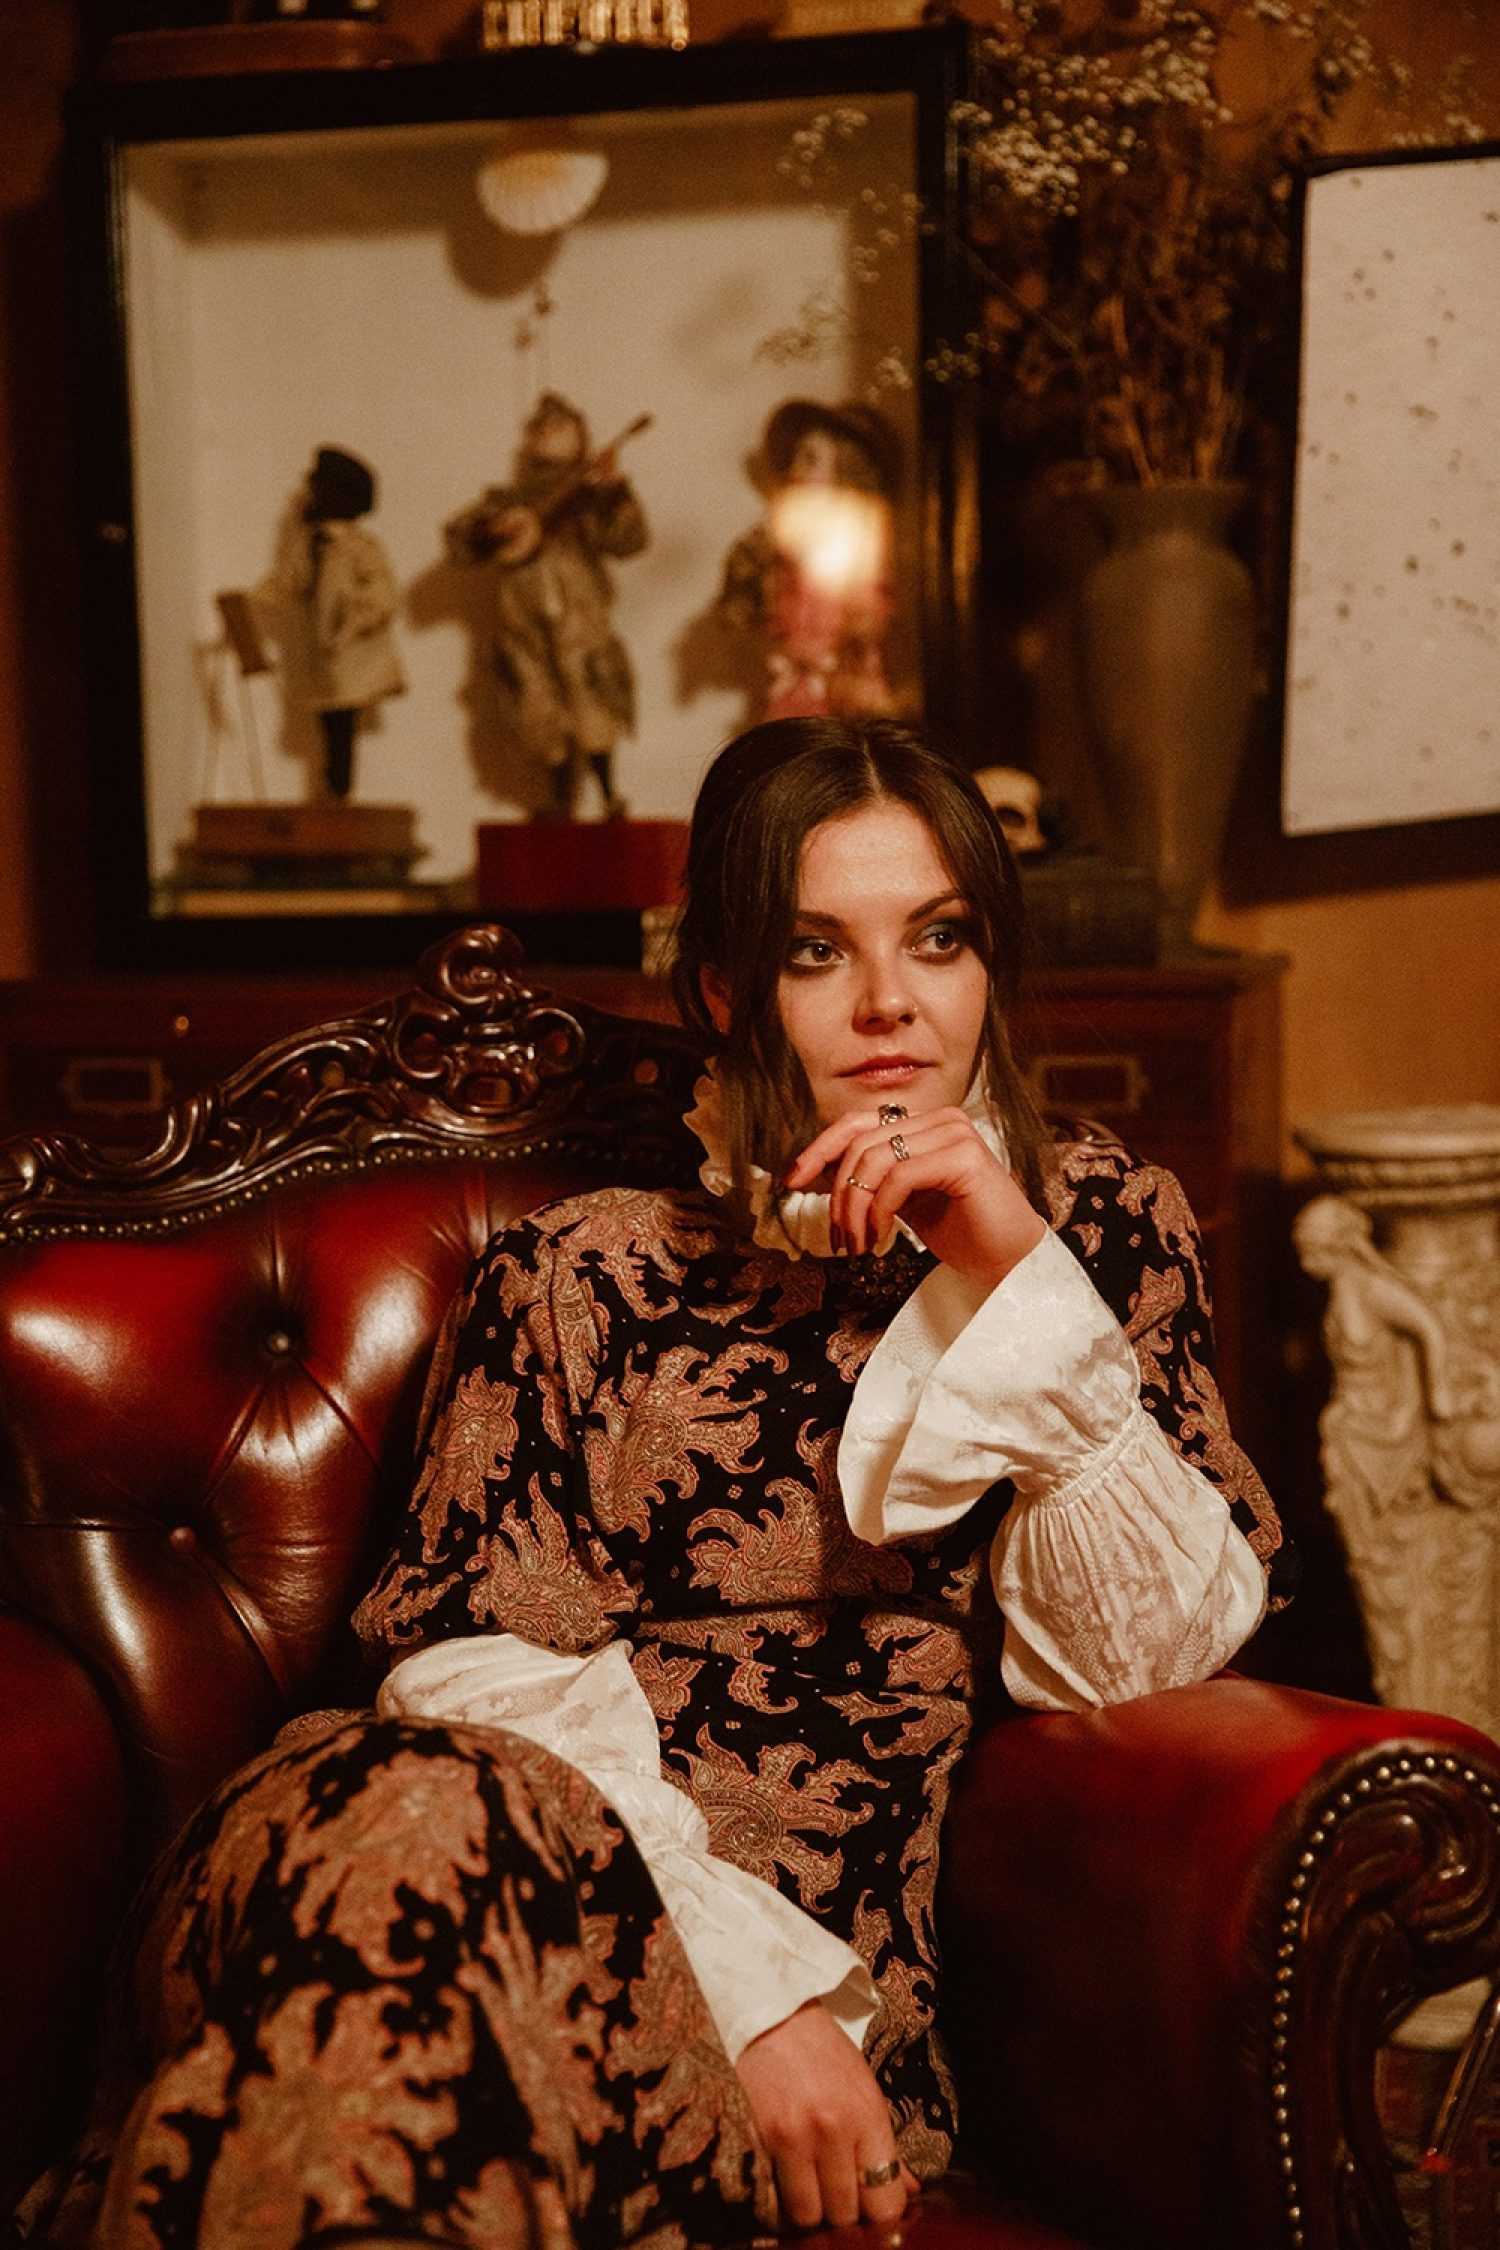 """Honeyblood's Stina Tweeddale introduces her bewitching new album: """"I guess I'm just a bit spooky"""""""